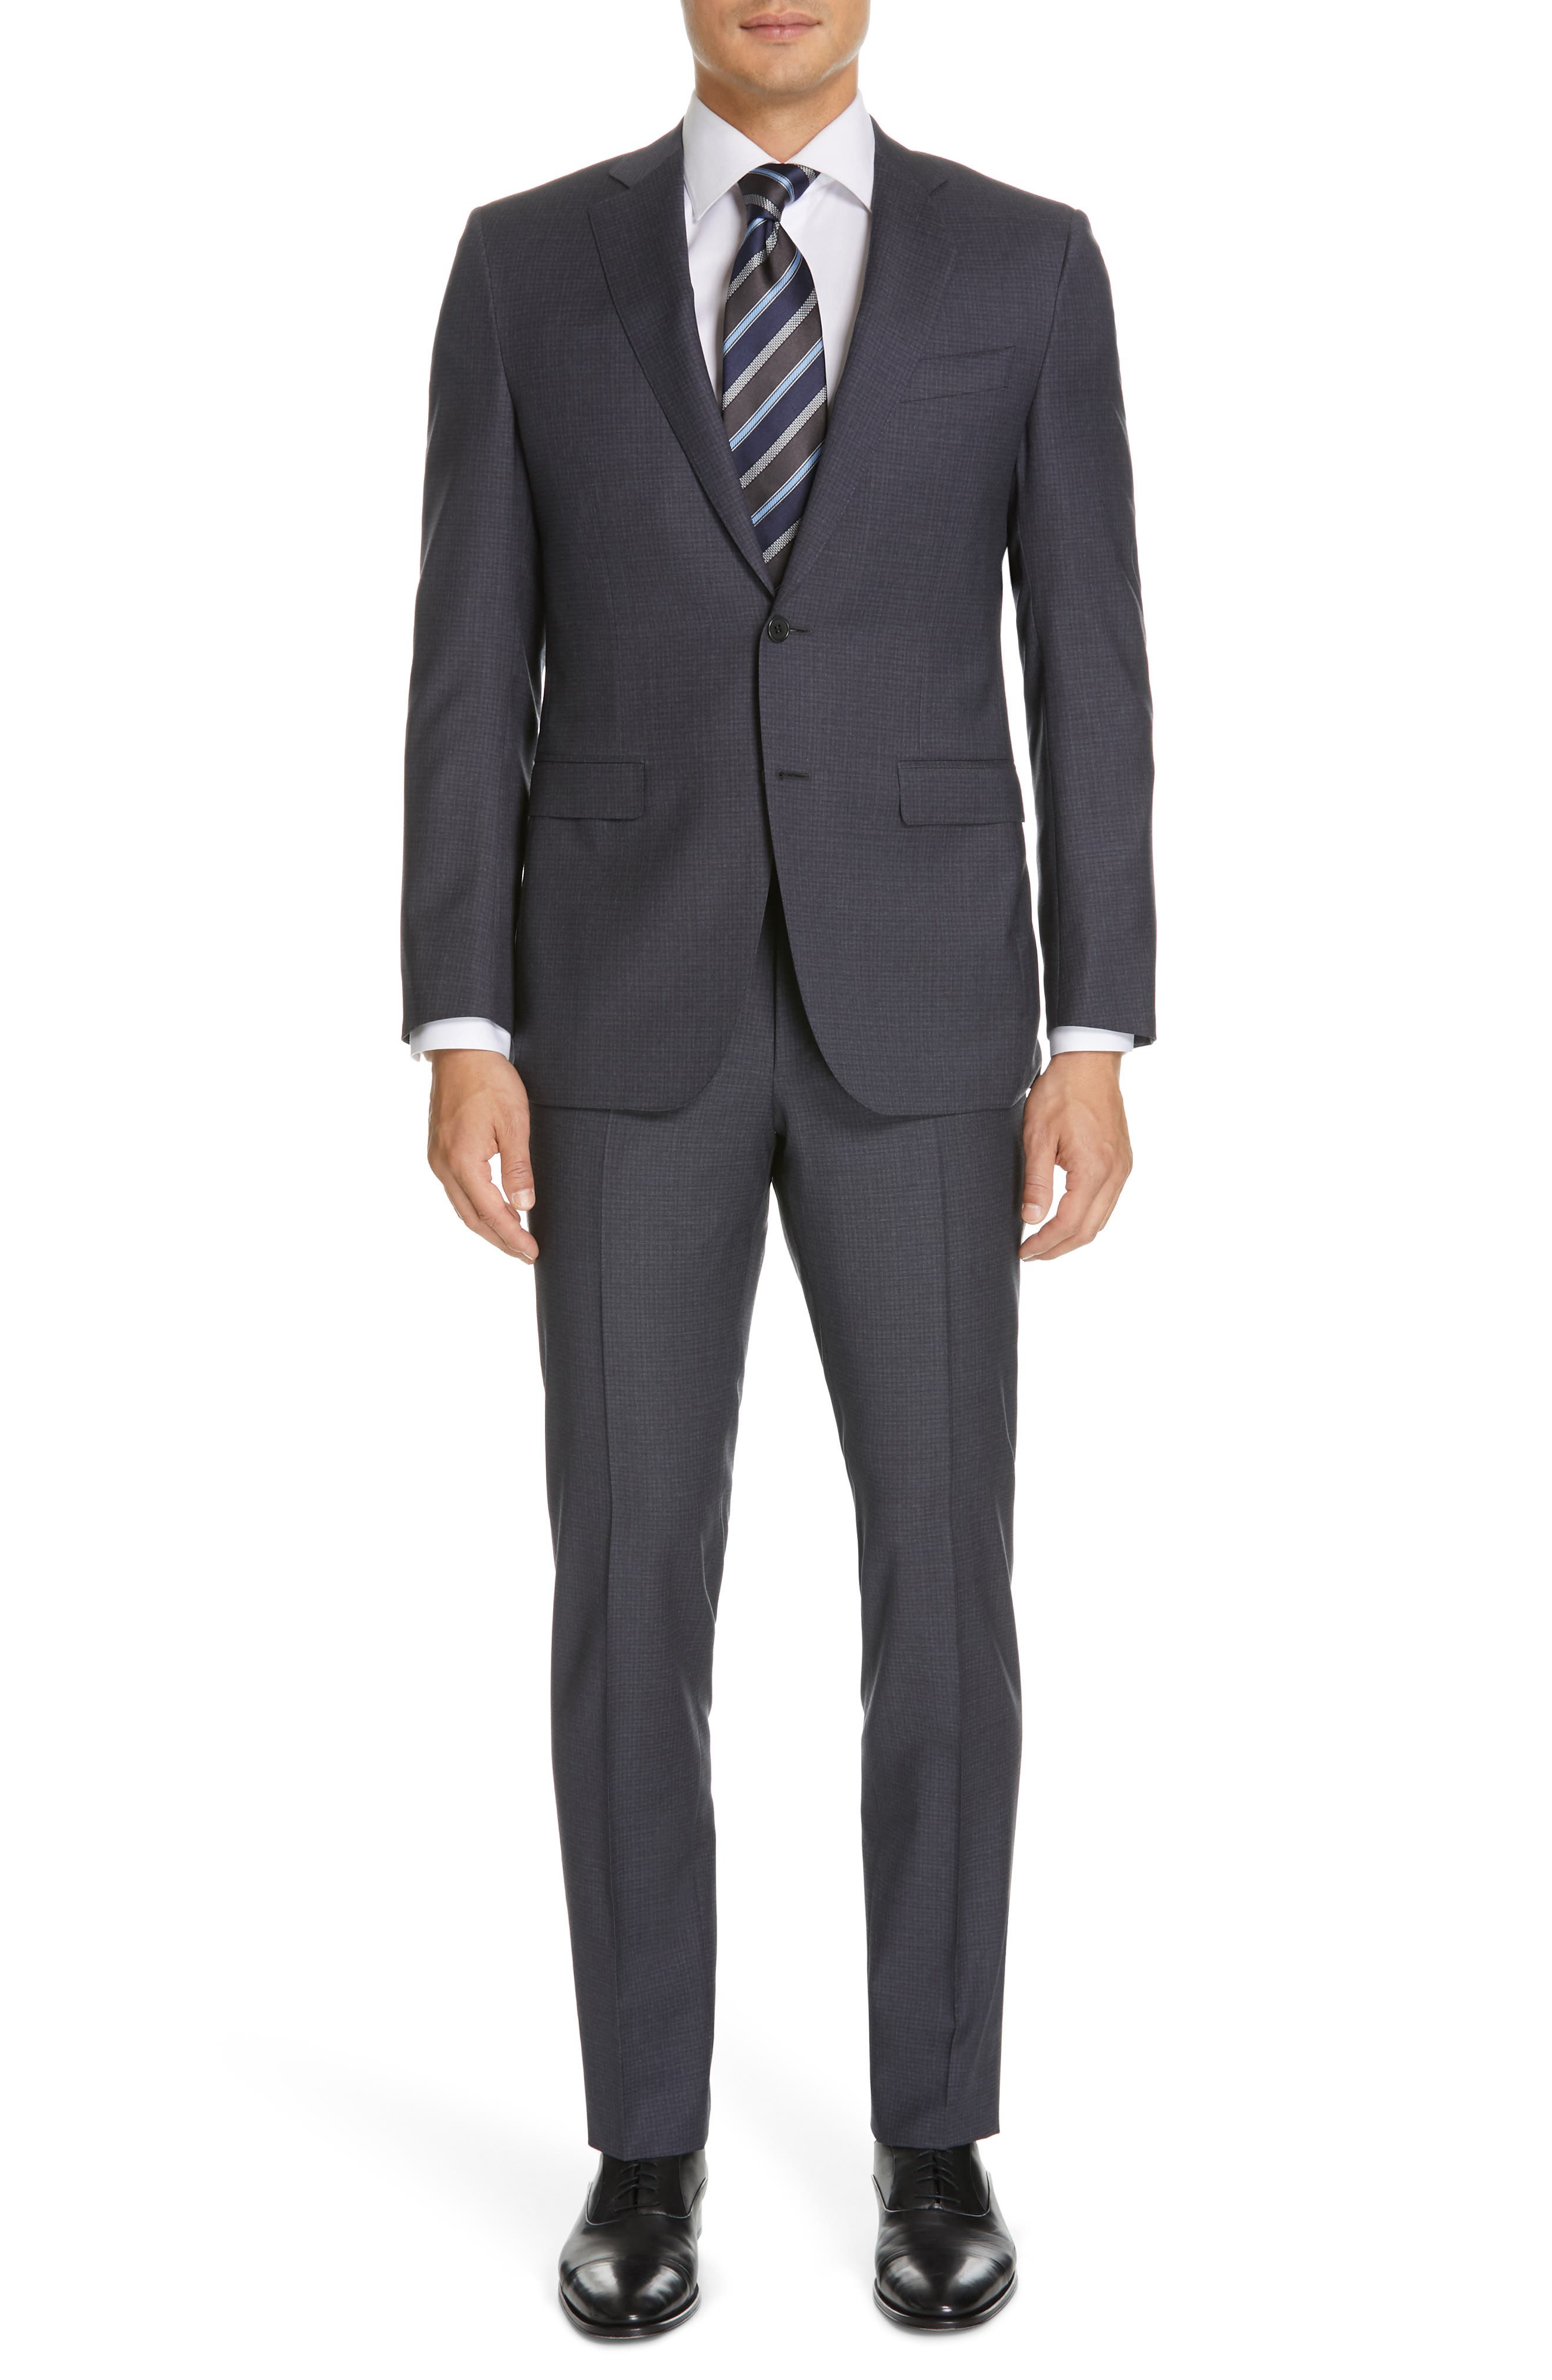 CANALI, Milano Classic Fit Check Wool Suit, Main thumbnail 1, color, CHARCOAL